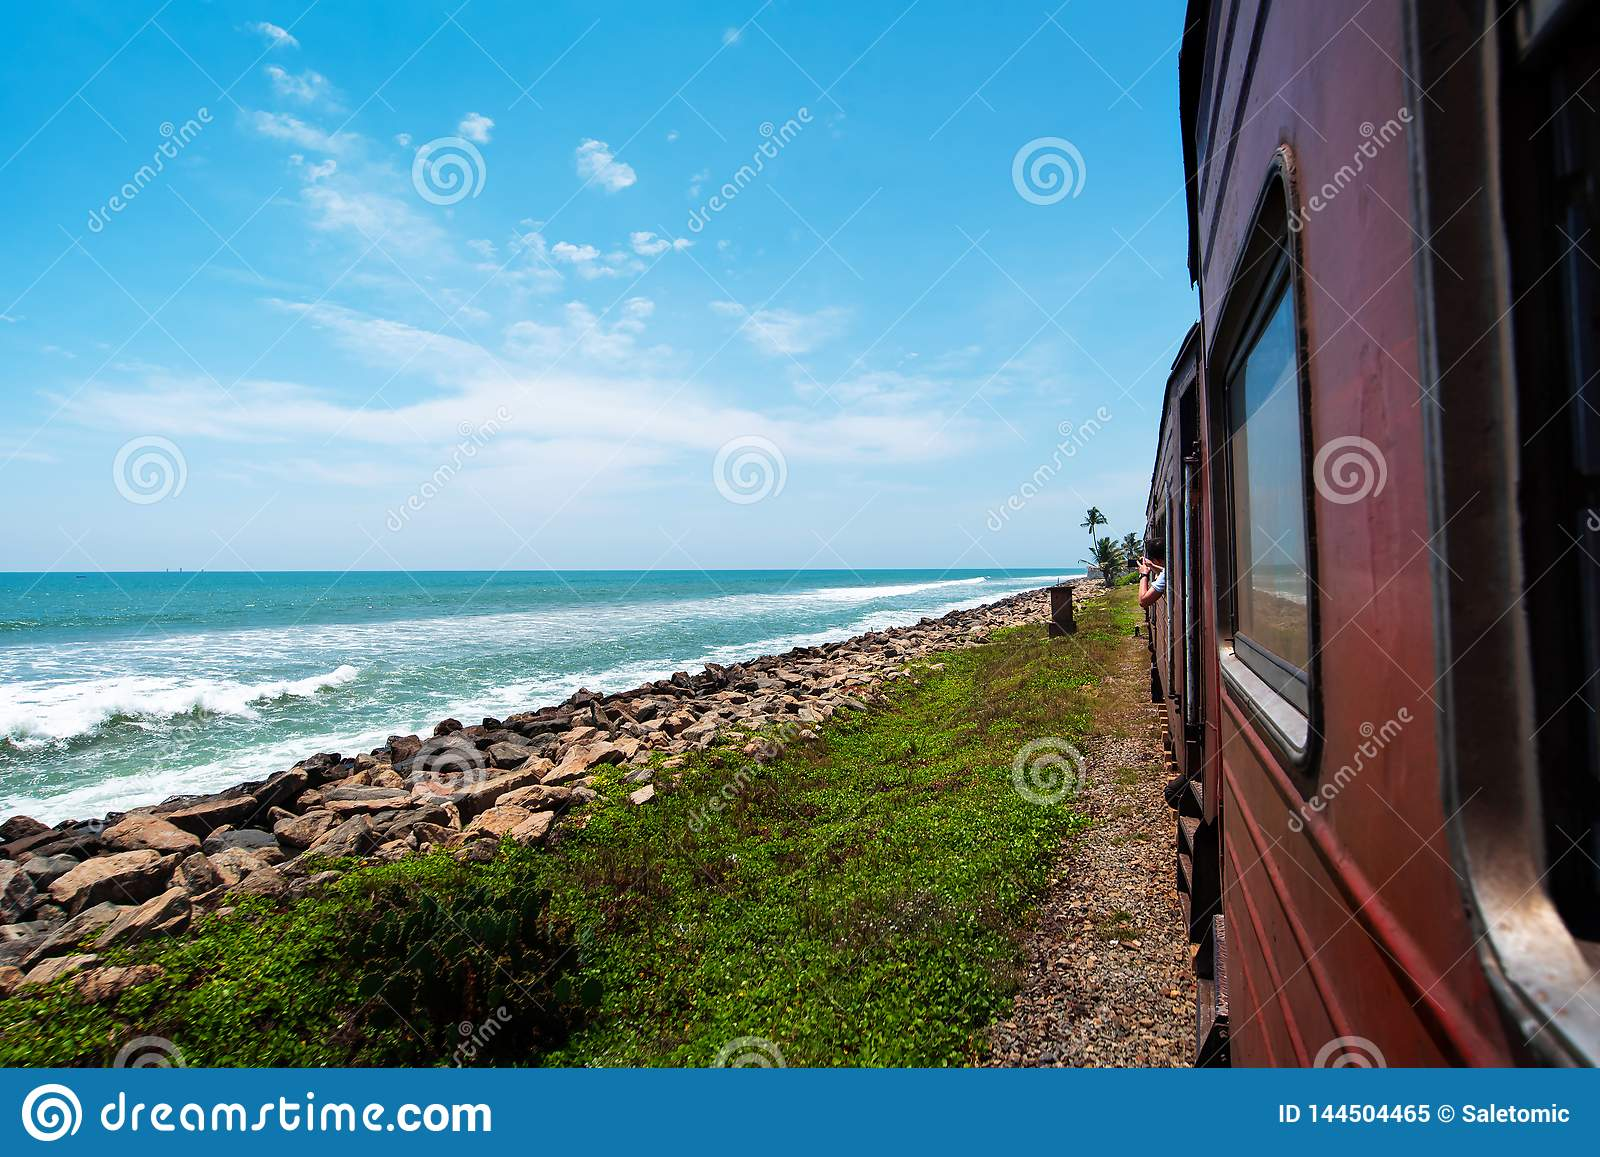 Coastal train in Sri Lanka